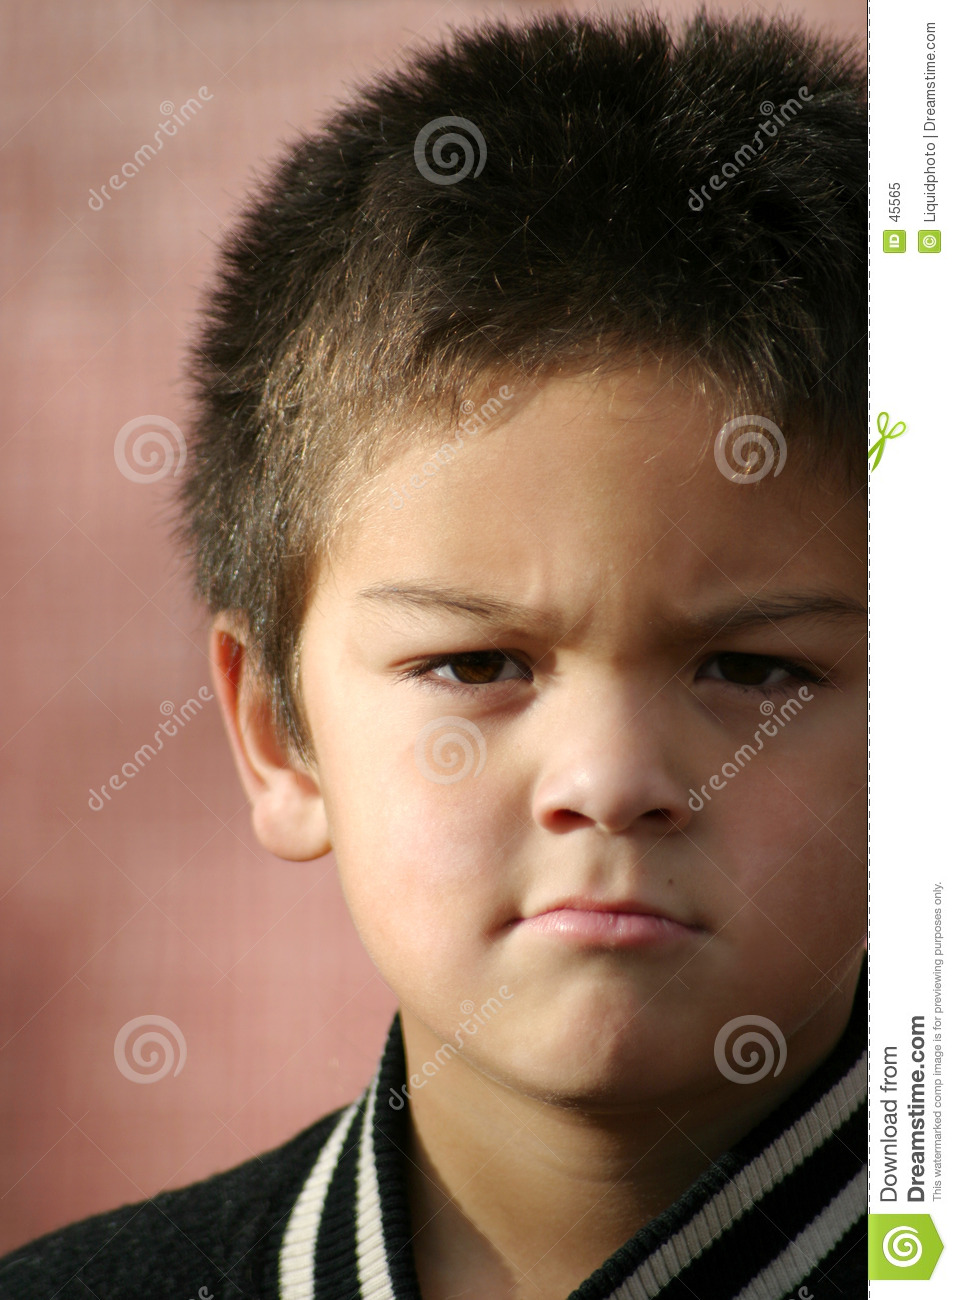 Young Boy Angry Royalty Free Stock Photo Image 45565